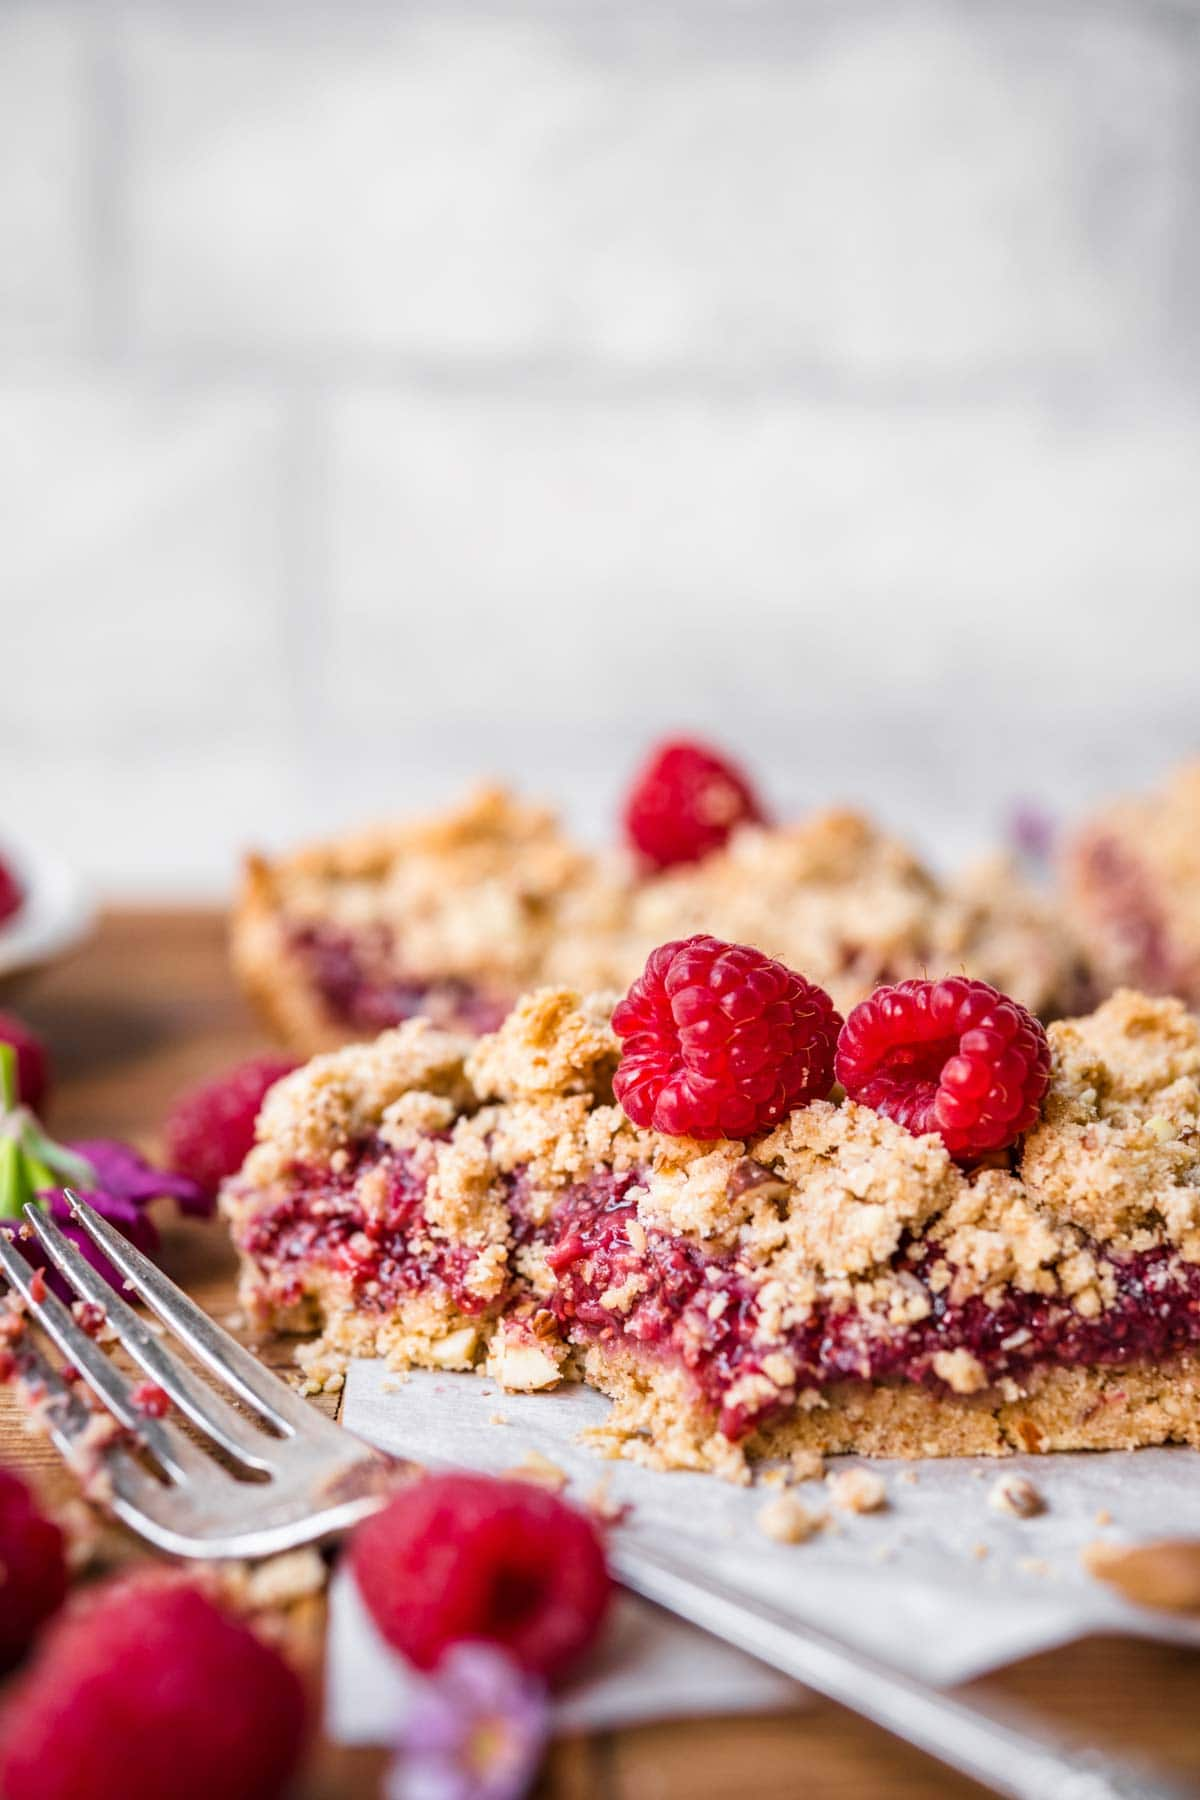 close up side view of raspberry crumble bar topped with fresh raspberries on parchment paper.